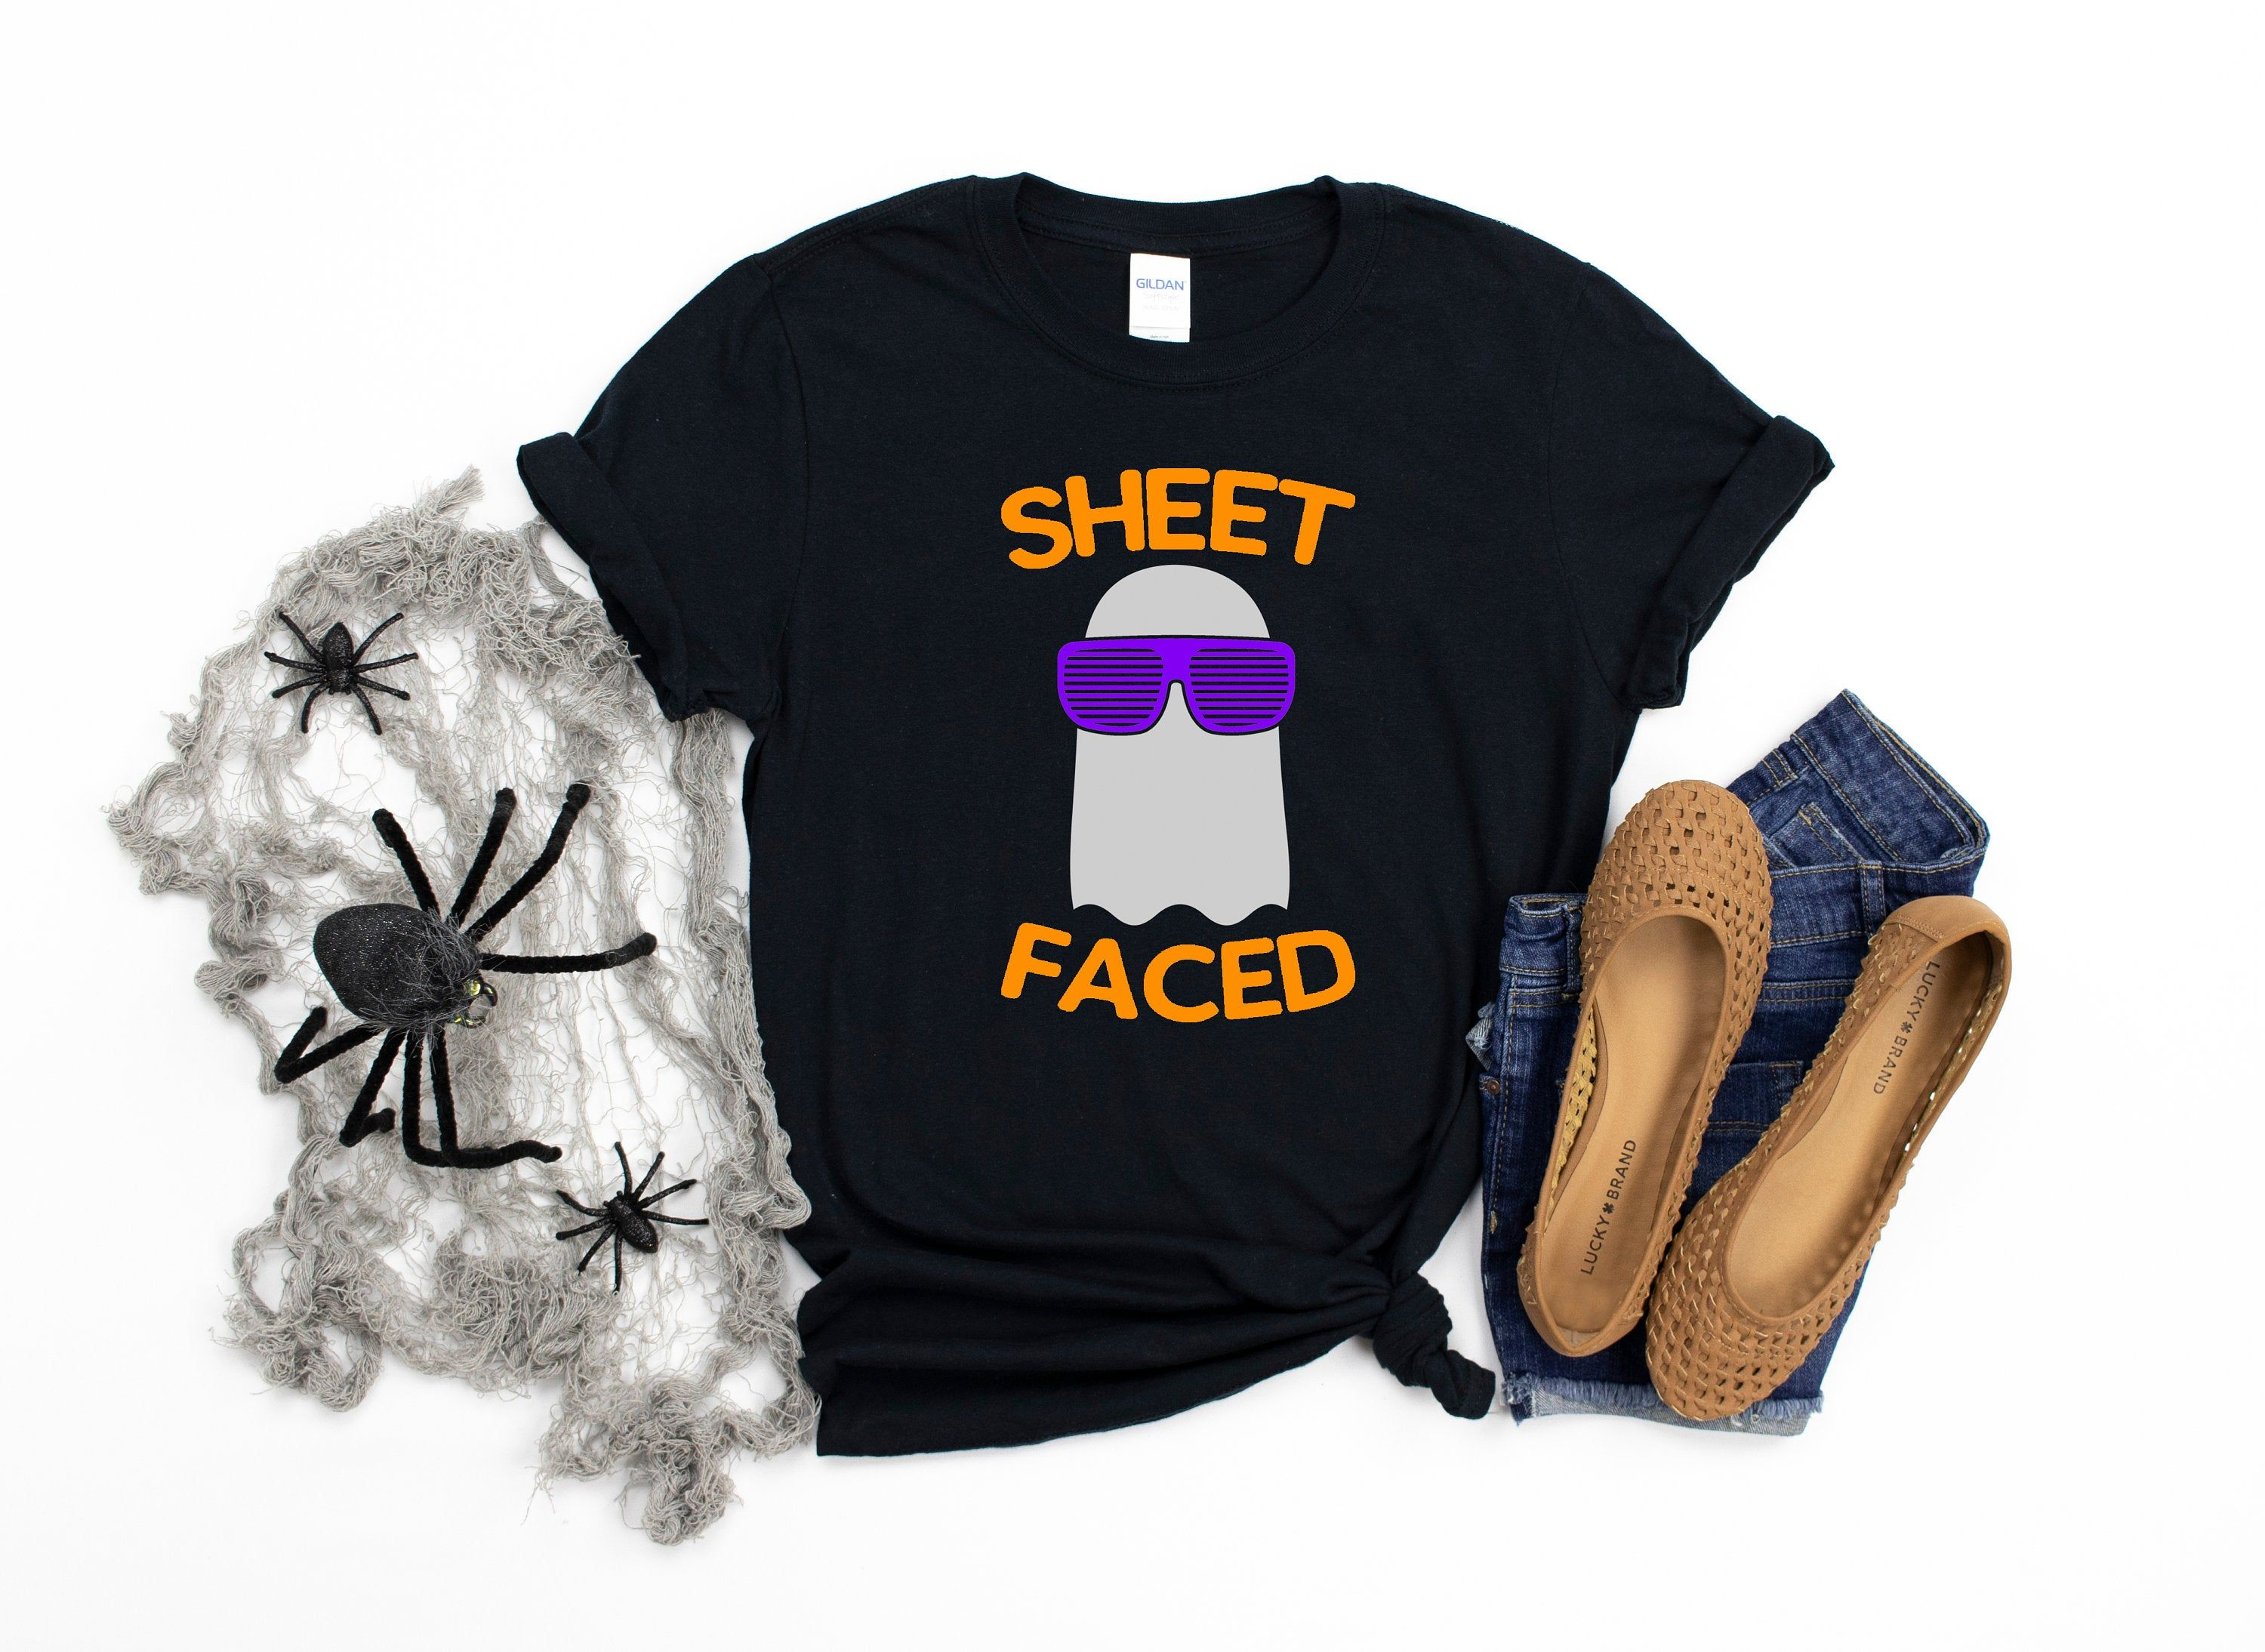 Sheet Faced-Funny Halloween Shirt-Adult Halloween Shirt-Halloween Humor-Halloween Apparel-Adult Apparel-Womens Apparel-Men's Apparel #3dayweekendhumor